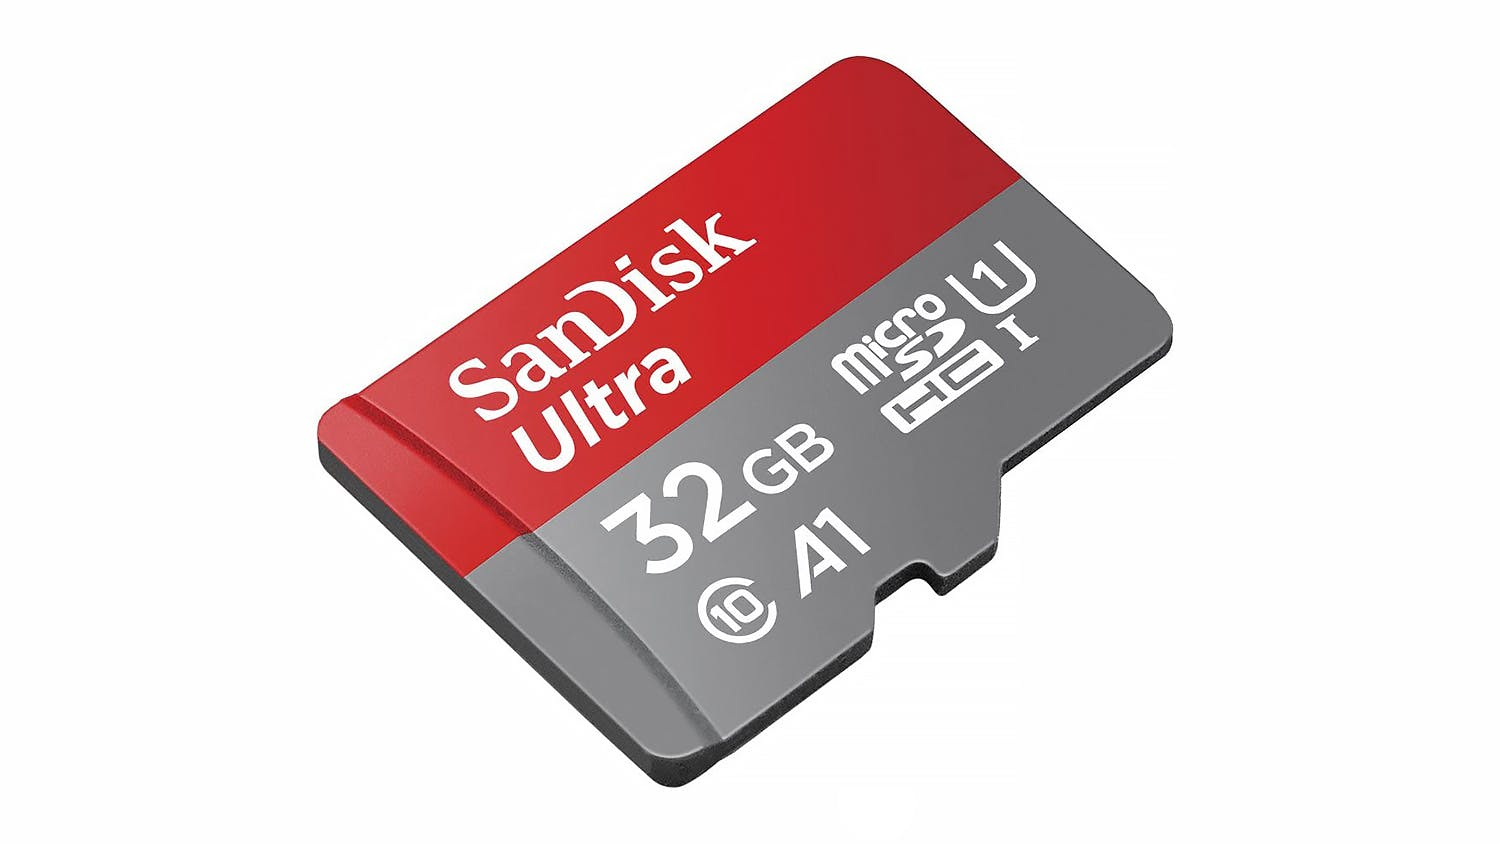 SanDisk Ultra Class 10 Micro SD Card - 32GB